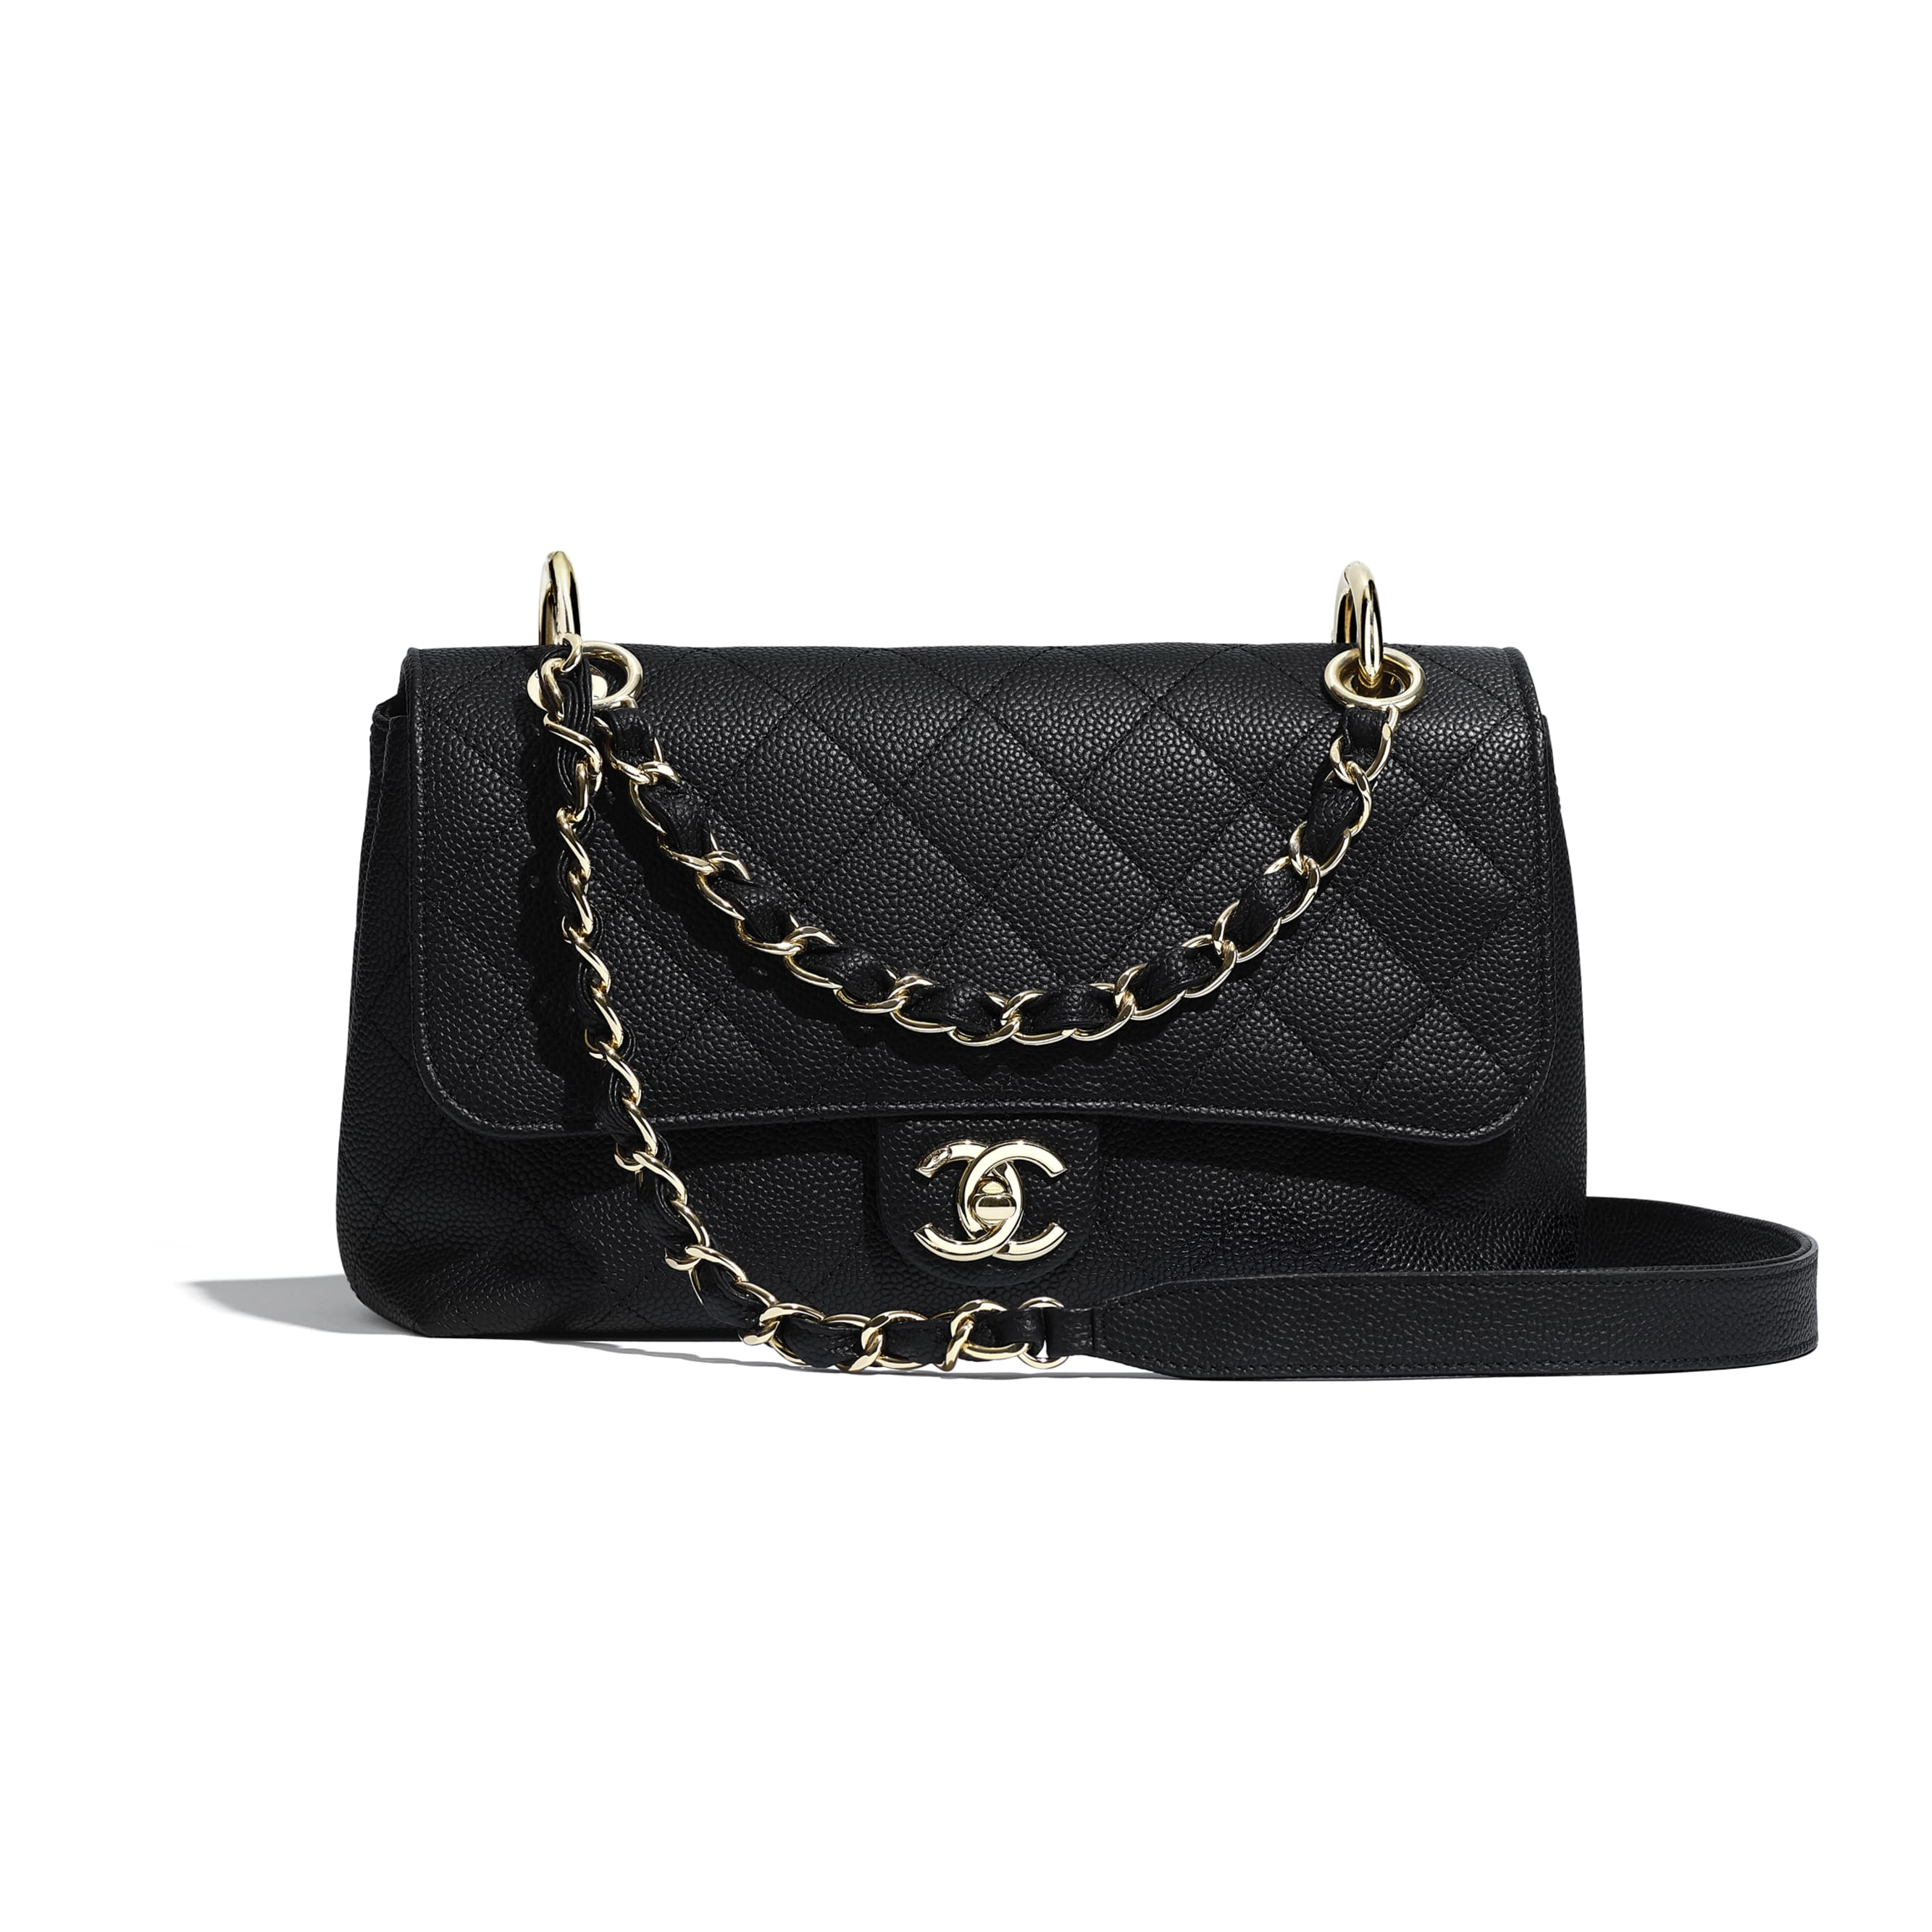 Flap Bag - Black - Grained Calfskin & Gold-Tone Metal - Default view - see standard sized version